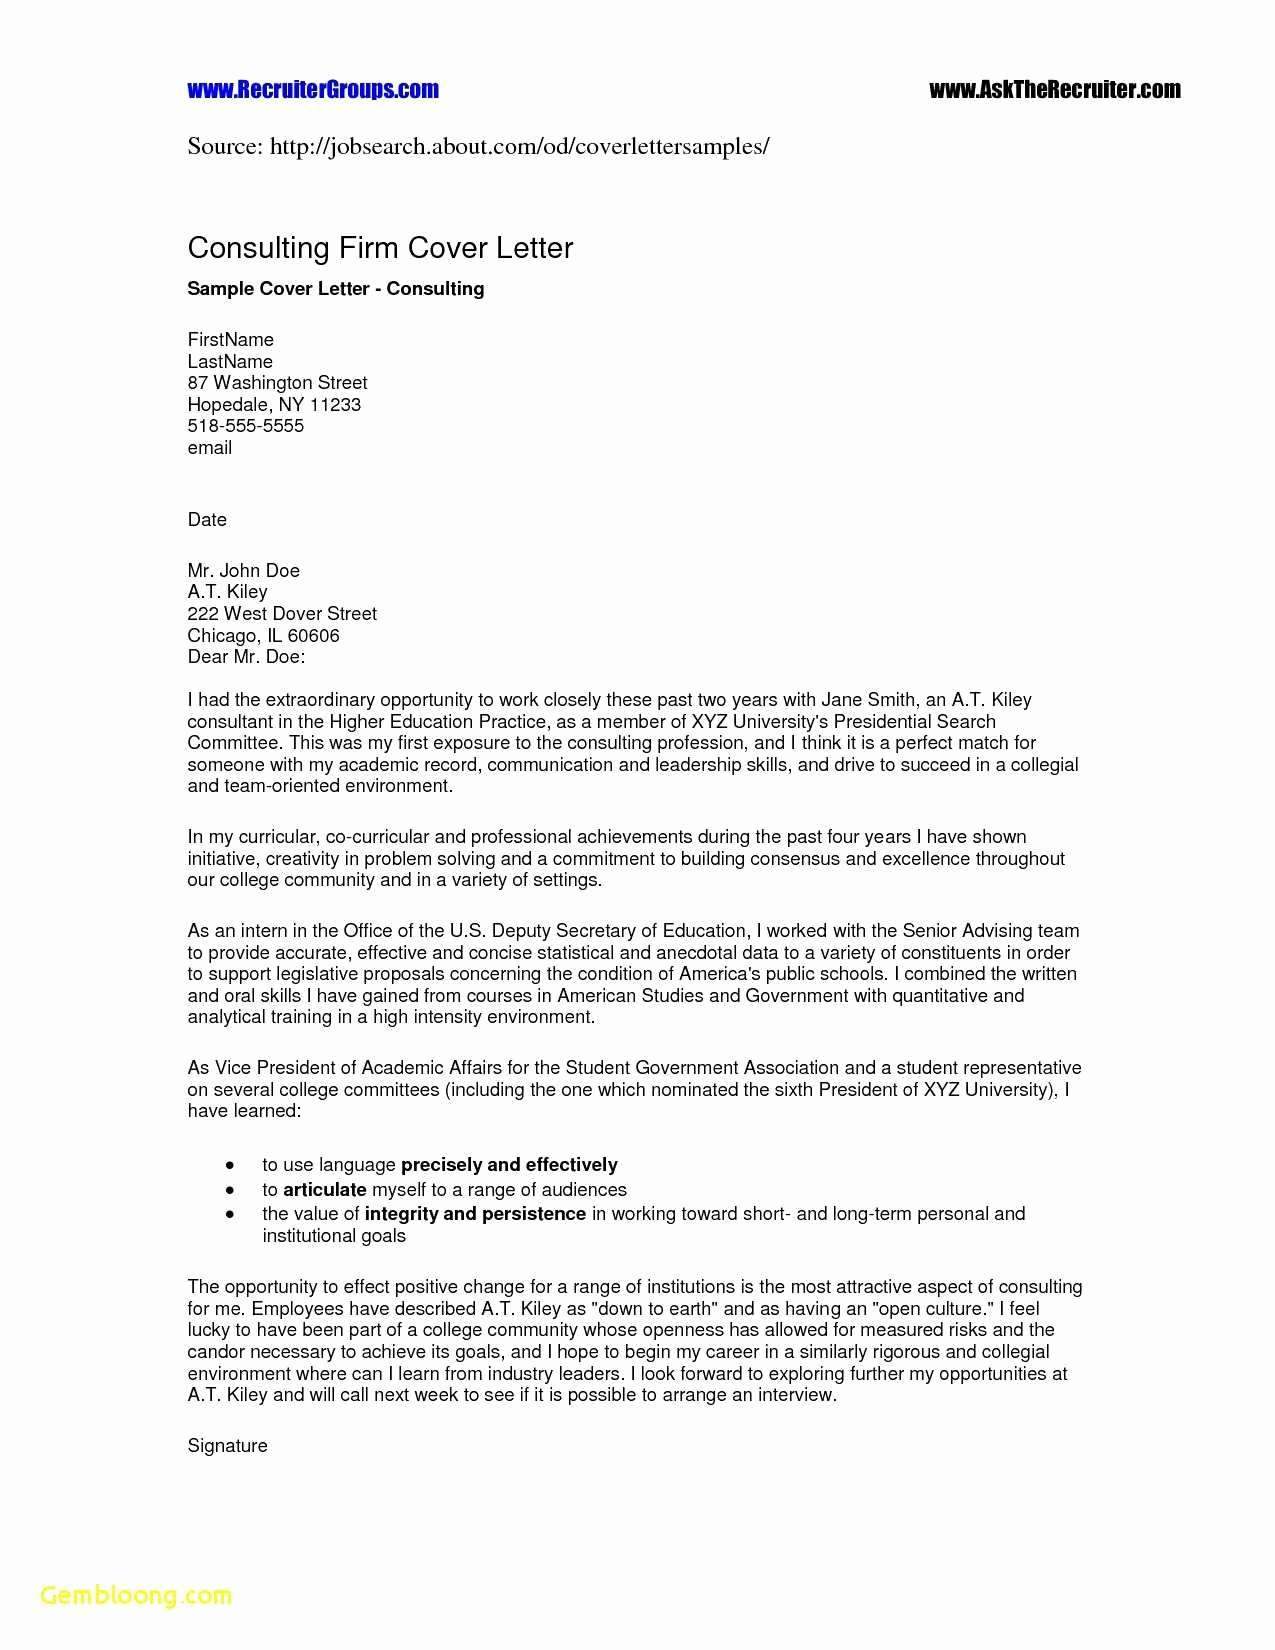 Career Builder Cover Letter Template Examples